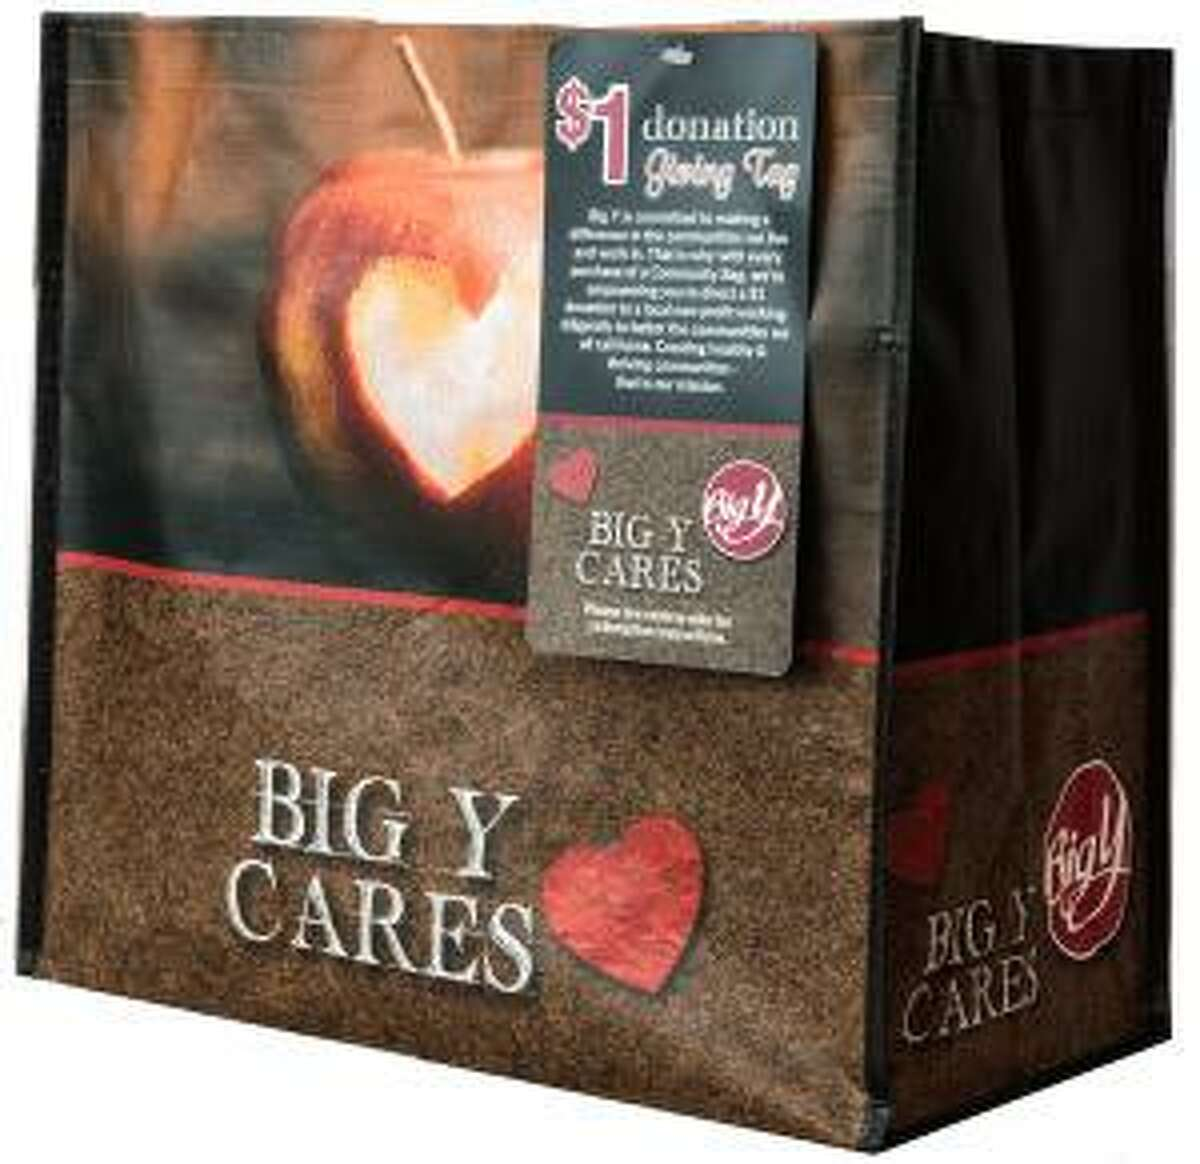 Area grocery stores including Big Y and Stop & Shop are selling grocery bags to benefit Charlotte Hungerford Hospital's Pink Rose Fund.